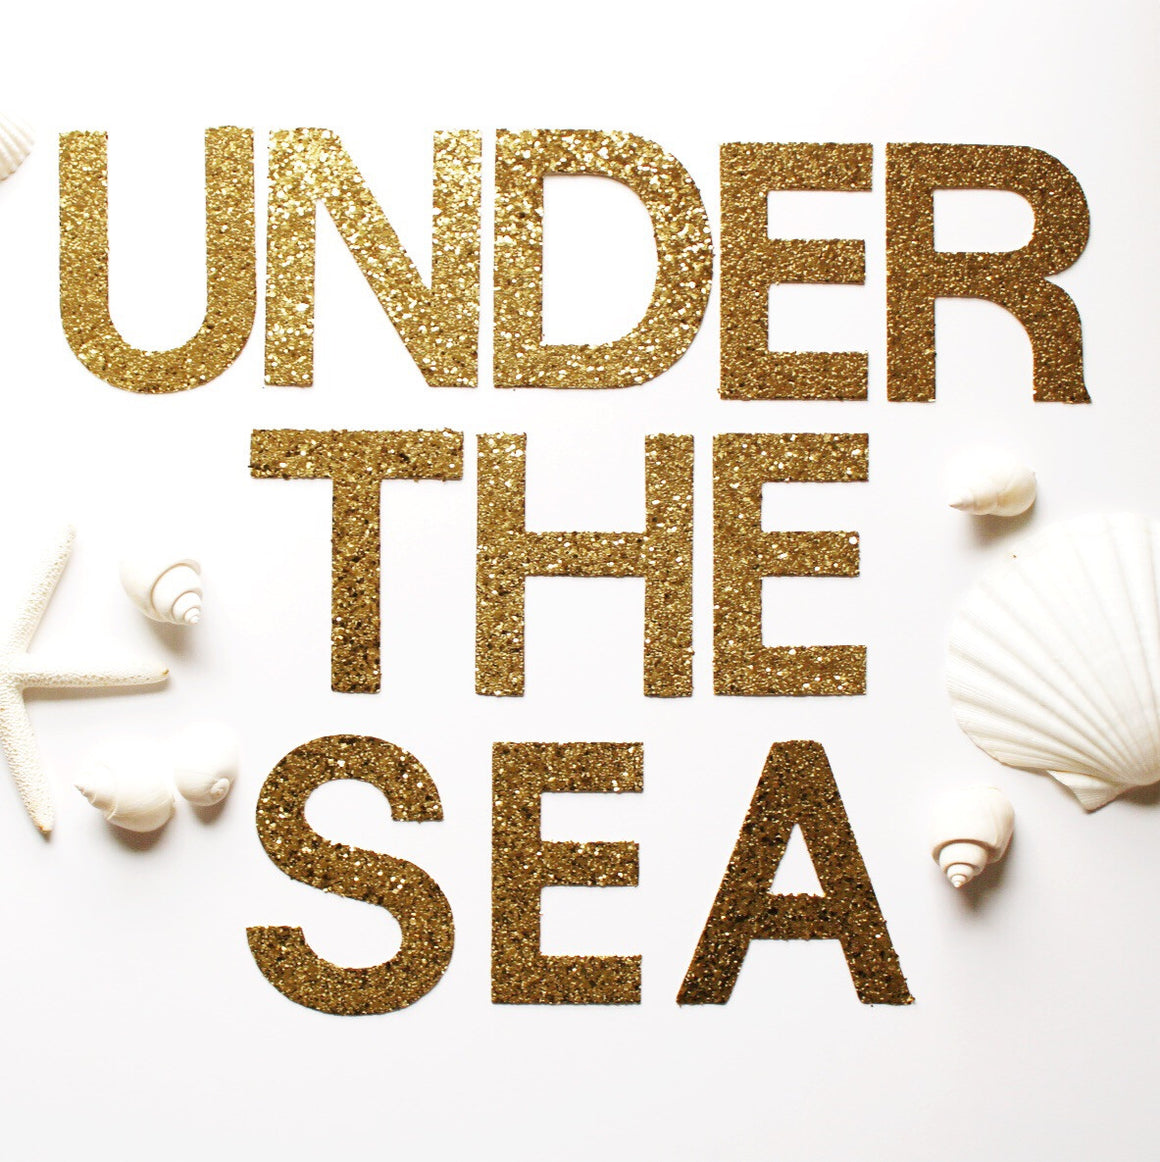 gold glitter banner // UNDER THE SEA // mermaid party